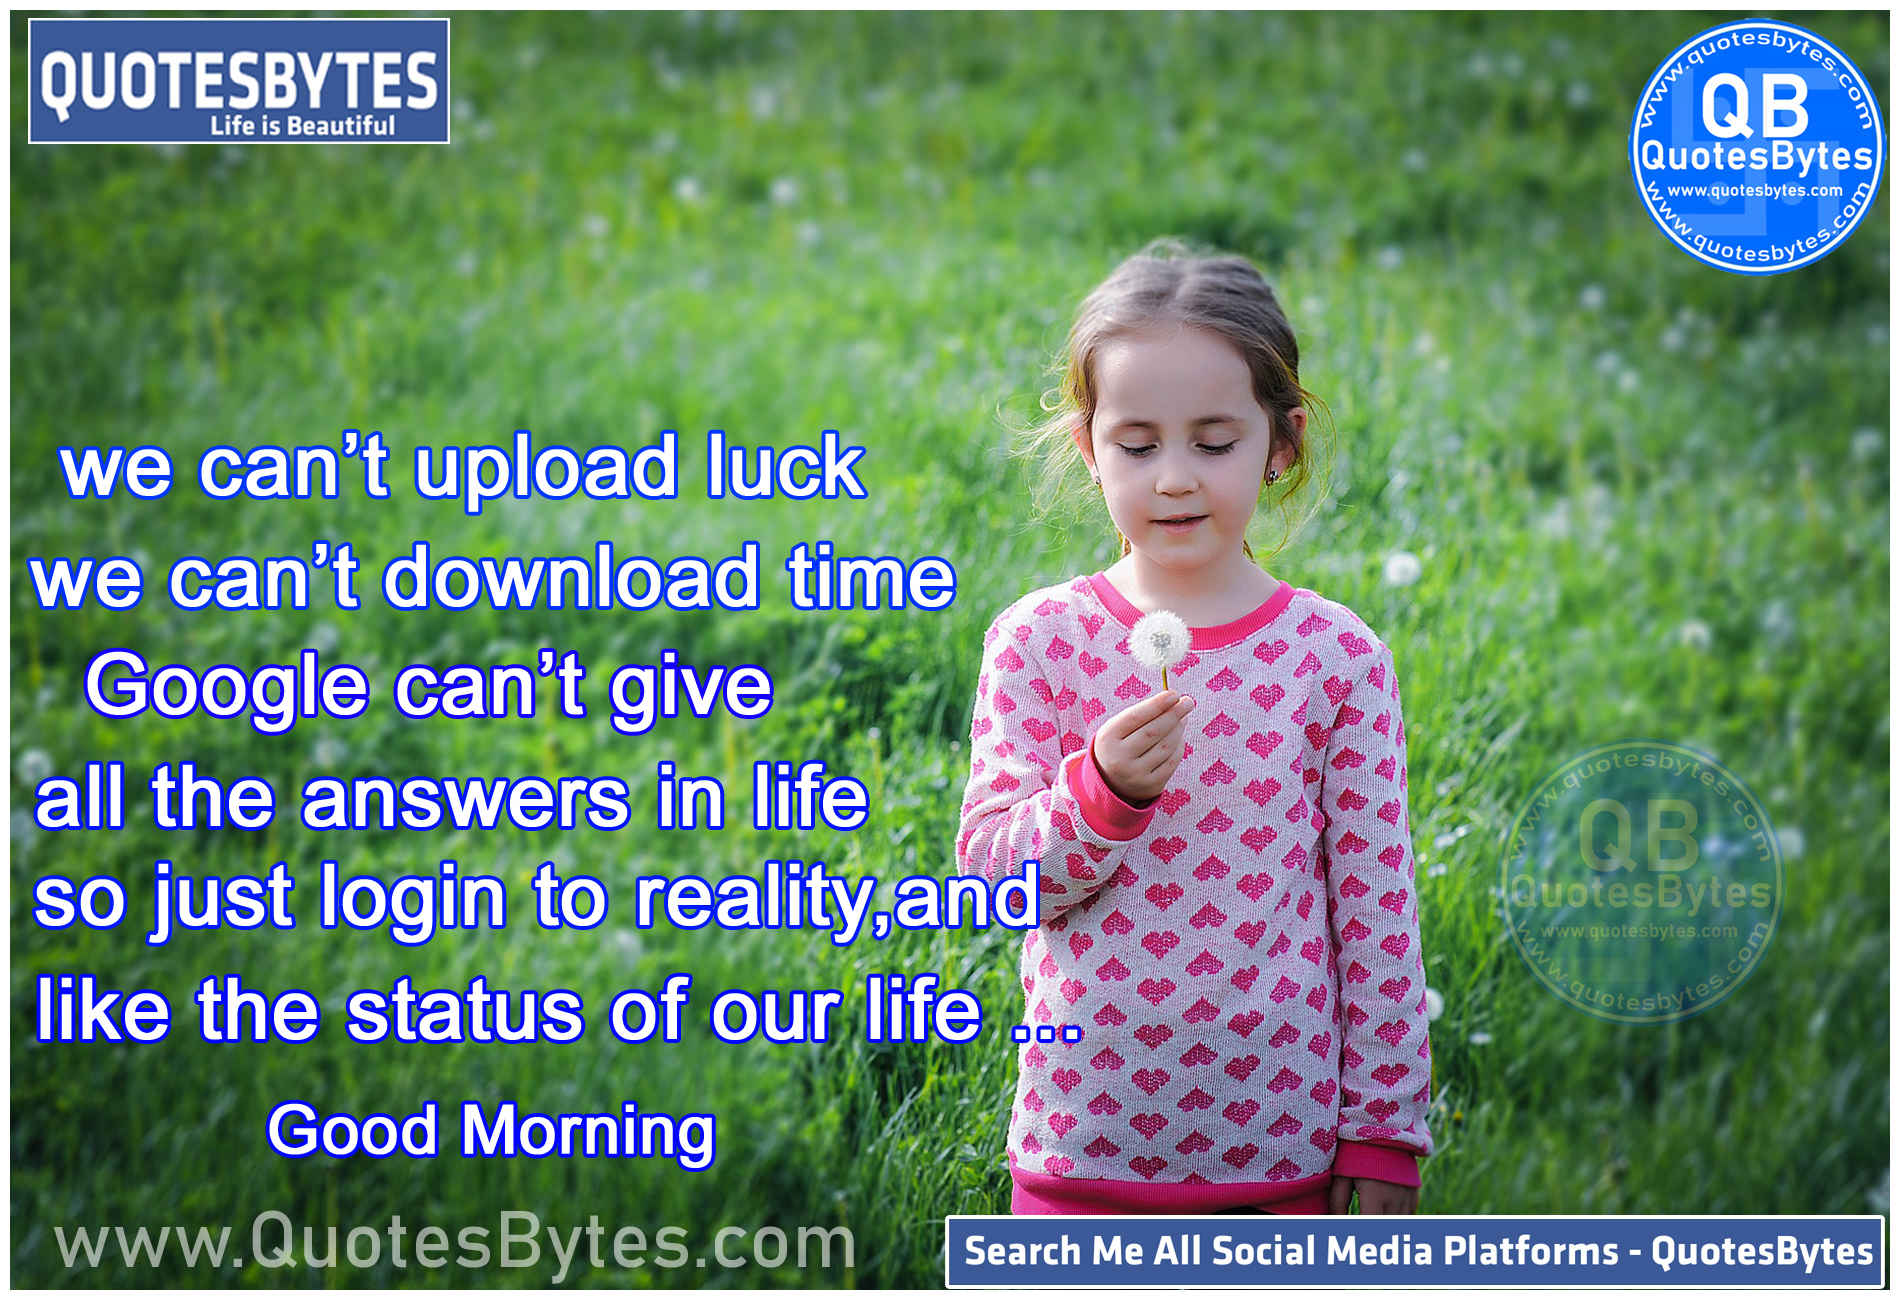 Latest English Good Morning Quotations,English good morning quotations,English good morning quotations download,latest English good morning images,good morning quotations in English,Best inspirational Good morning quotes in English, Best Quotes About Life,quotesbytes,inspirational quotes, Life Quotes — Inspiring the Happy, Good and Funny in Life,motivational quotes,kannada motivational words,good morning images with positive words ,life quotes in English,motivational quotes in tamil,motivational quotes in kannada,subhodayam English,good morning motivational quotes in tamil,truth quotes images in hindi,motivational quotes in malayalam,love quotes in English,images of life lessons quotes,victory quotes,English good night kavithalu sms,funny English kavithalu,inspirational quotes in English,subhodayam images,subhodayam English images,motivational quotes in English,love quotes images kannada,goodnight images malayalam,inspirational quotes in English with images,good night kannada thoughts,success quotes in English,English good morning images with positive words ,inspirational quotes in malayalam,marriage wishes in English quotes,motivational quotes English,tamil inspirational quotes,good morning malayalam sms,funny kavithalu in English,best quotes in English,life motivational quotes in tamil,moral quotes in English,subhodayam photos, MOTIVATIONAL QUOTES TO REACH YOUR POTENTIAL EACH DAY, Inspirational Motivational Quotes To Inspire You To Greatness,motivational quotes tamil,English animutyalu, English sooktulu, shubhodayam greetings wishes messages in English,best English Goood morning success Quotes with goal setting sms text messages for whatsapp,good morning god images in English,love quotations,Latest English good morning quotations for friends about win life goal settings,Quotes ideas | quotes, great quotes, best english good morning quotes, inspirational quotes, English,malayalam love quotes in english,inspiring English quotes,motivational quotes in tamil images,go